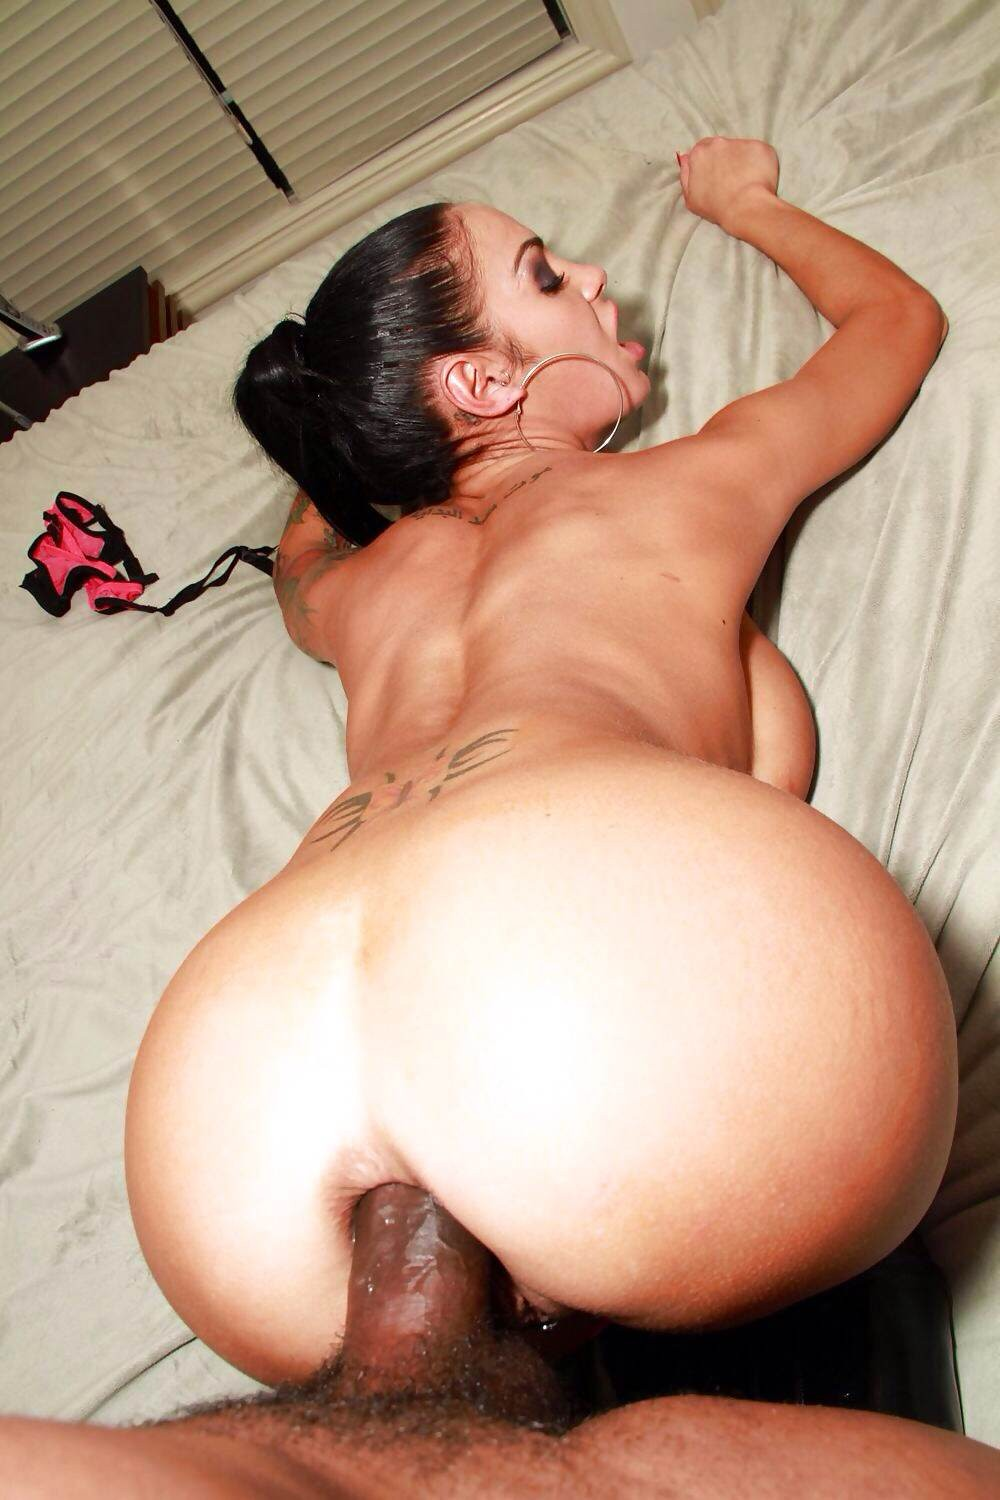 japanese girl hanging out with african natives Anal, Analsex, Ass, Assfuck, Bbc, Bbcslut, Bigcock, Black, Blackcock, Bmww, Butt, Buttfuck, Doggystyle, Hardcore, Hot, Interracial, Interracial, Interracialanal, Porn, Sexy, Wwbm